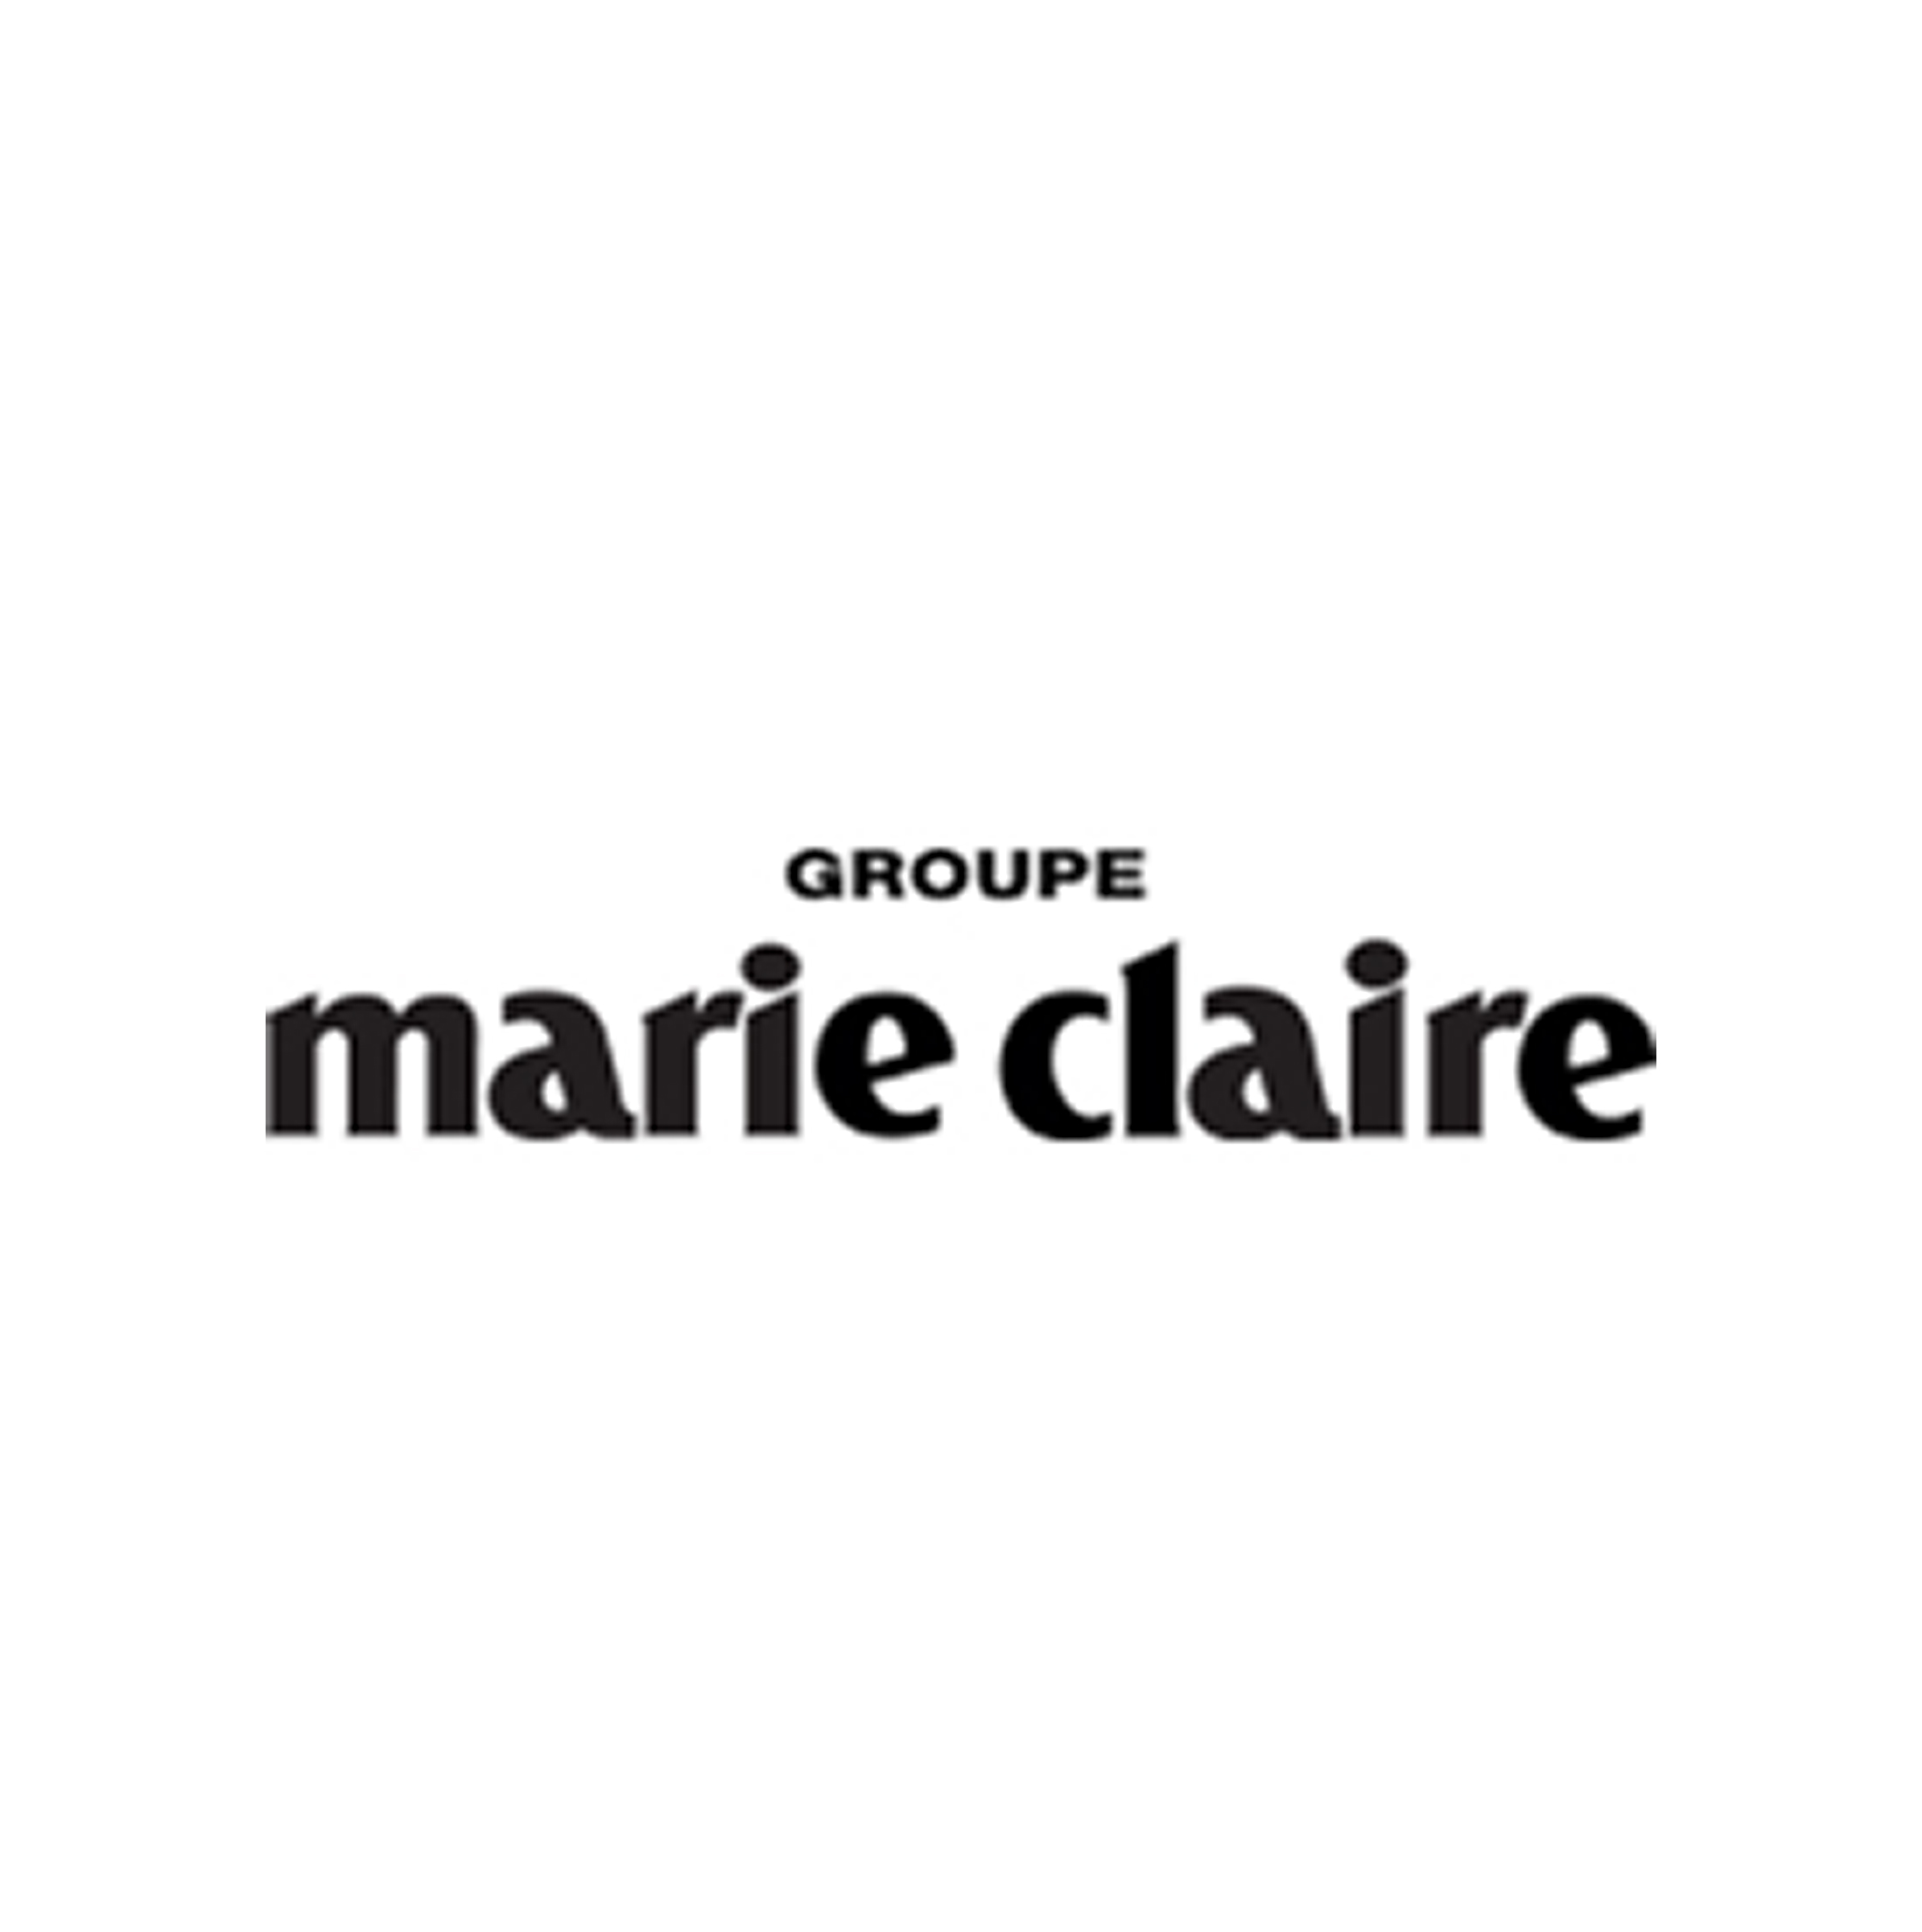 groupe marie claire logo.jpg